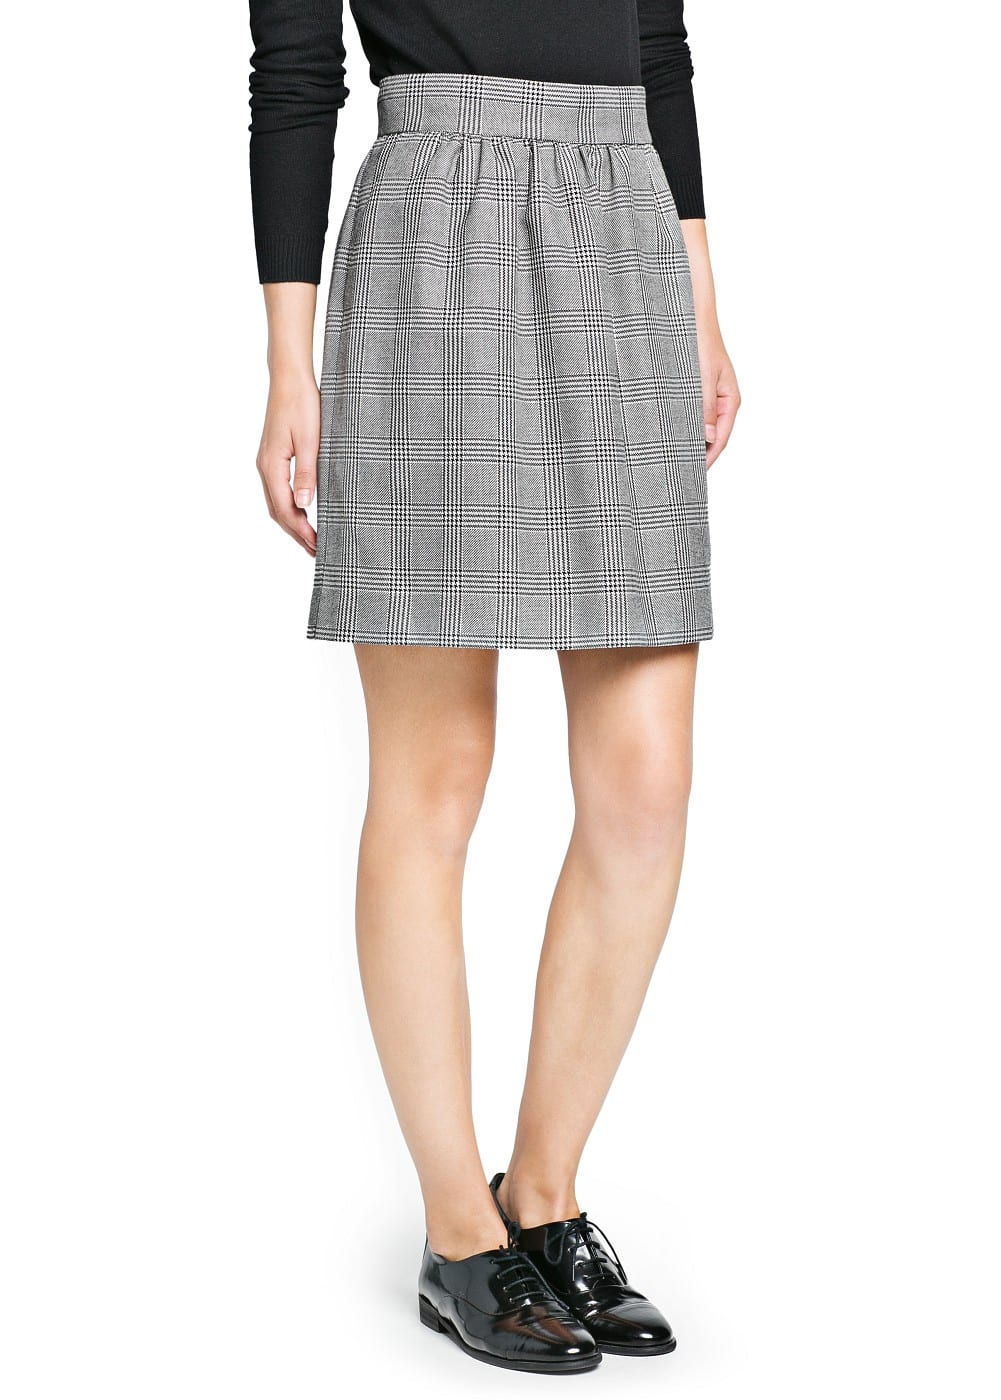 Prince of wales flared skirt | MANGO